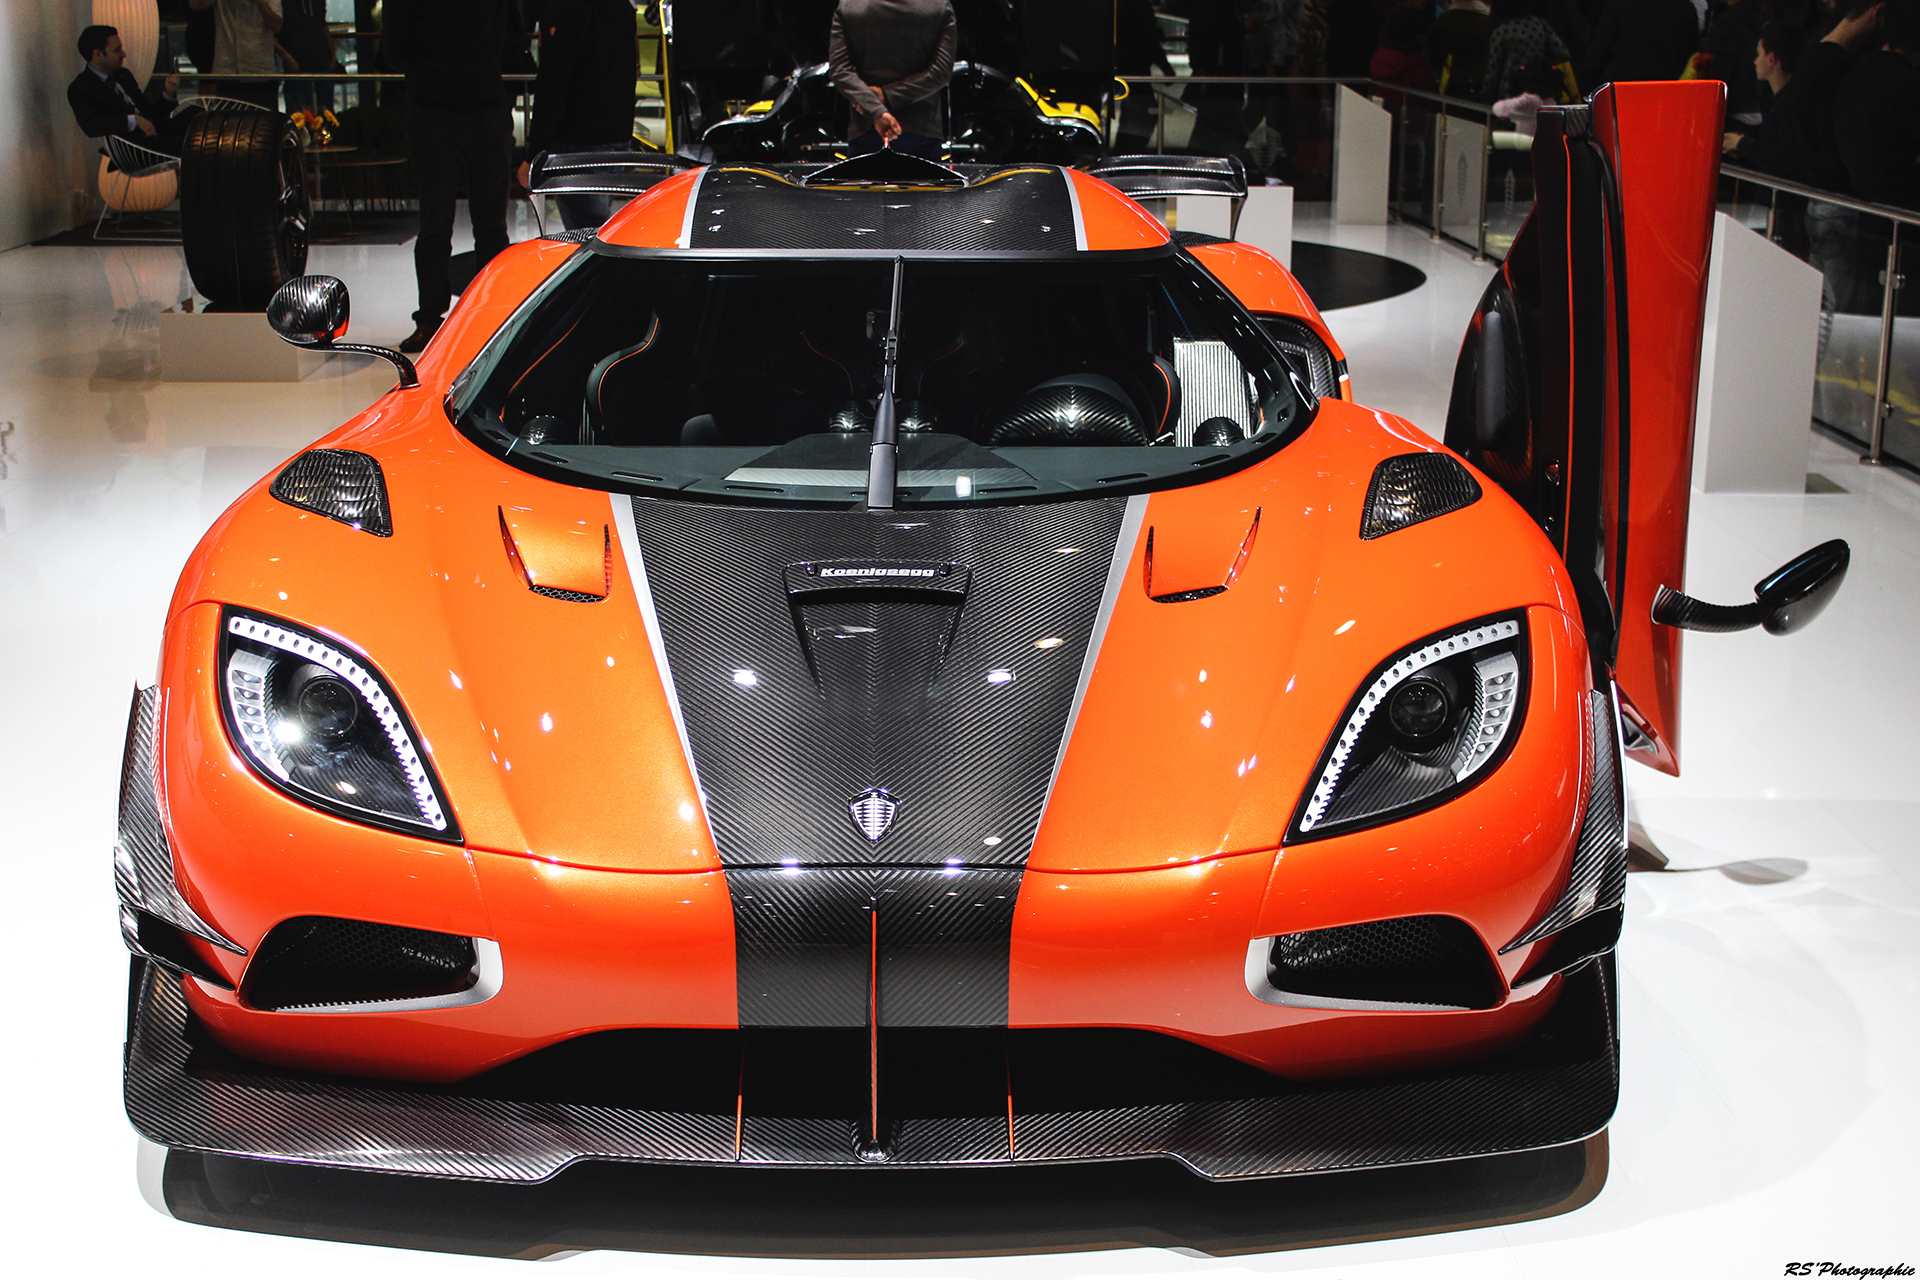 Koenigsegg Agera Final One of 1 - front - Geneva 2016 - Arnaud Demasier RS Photographie